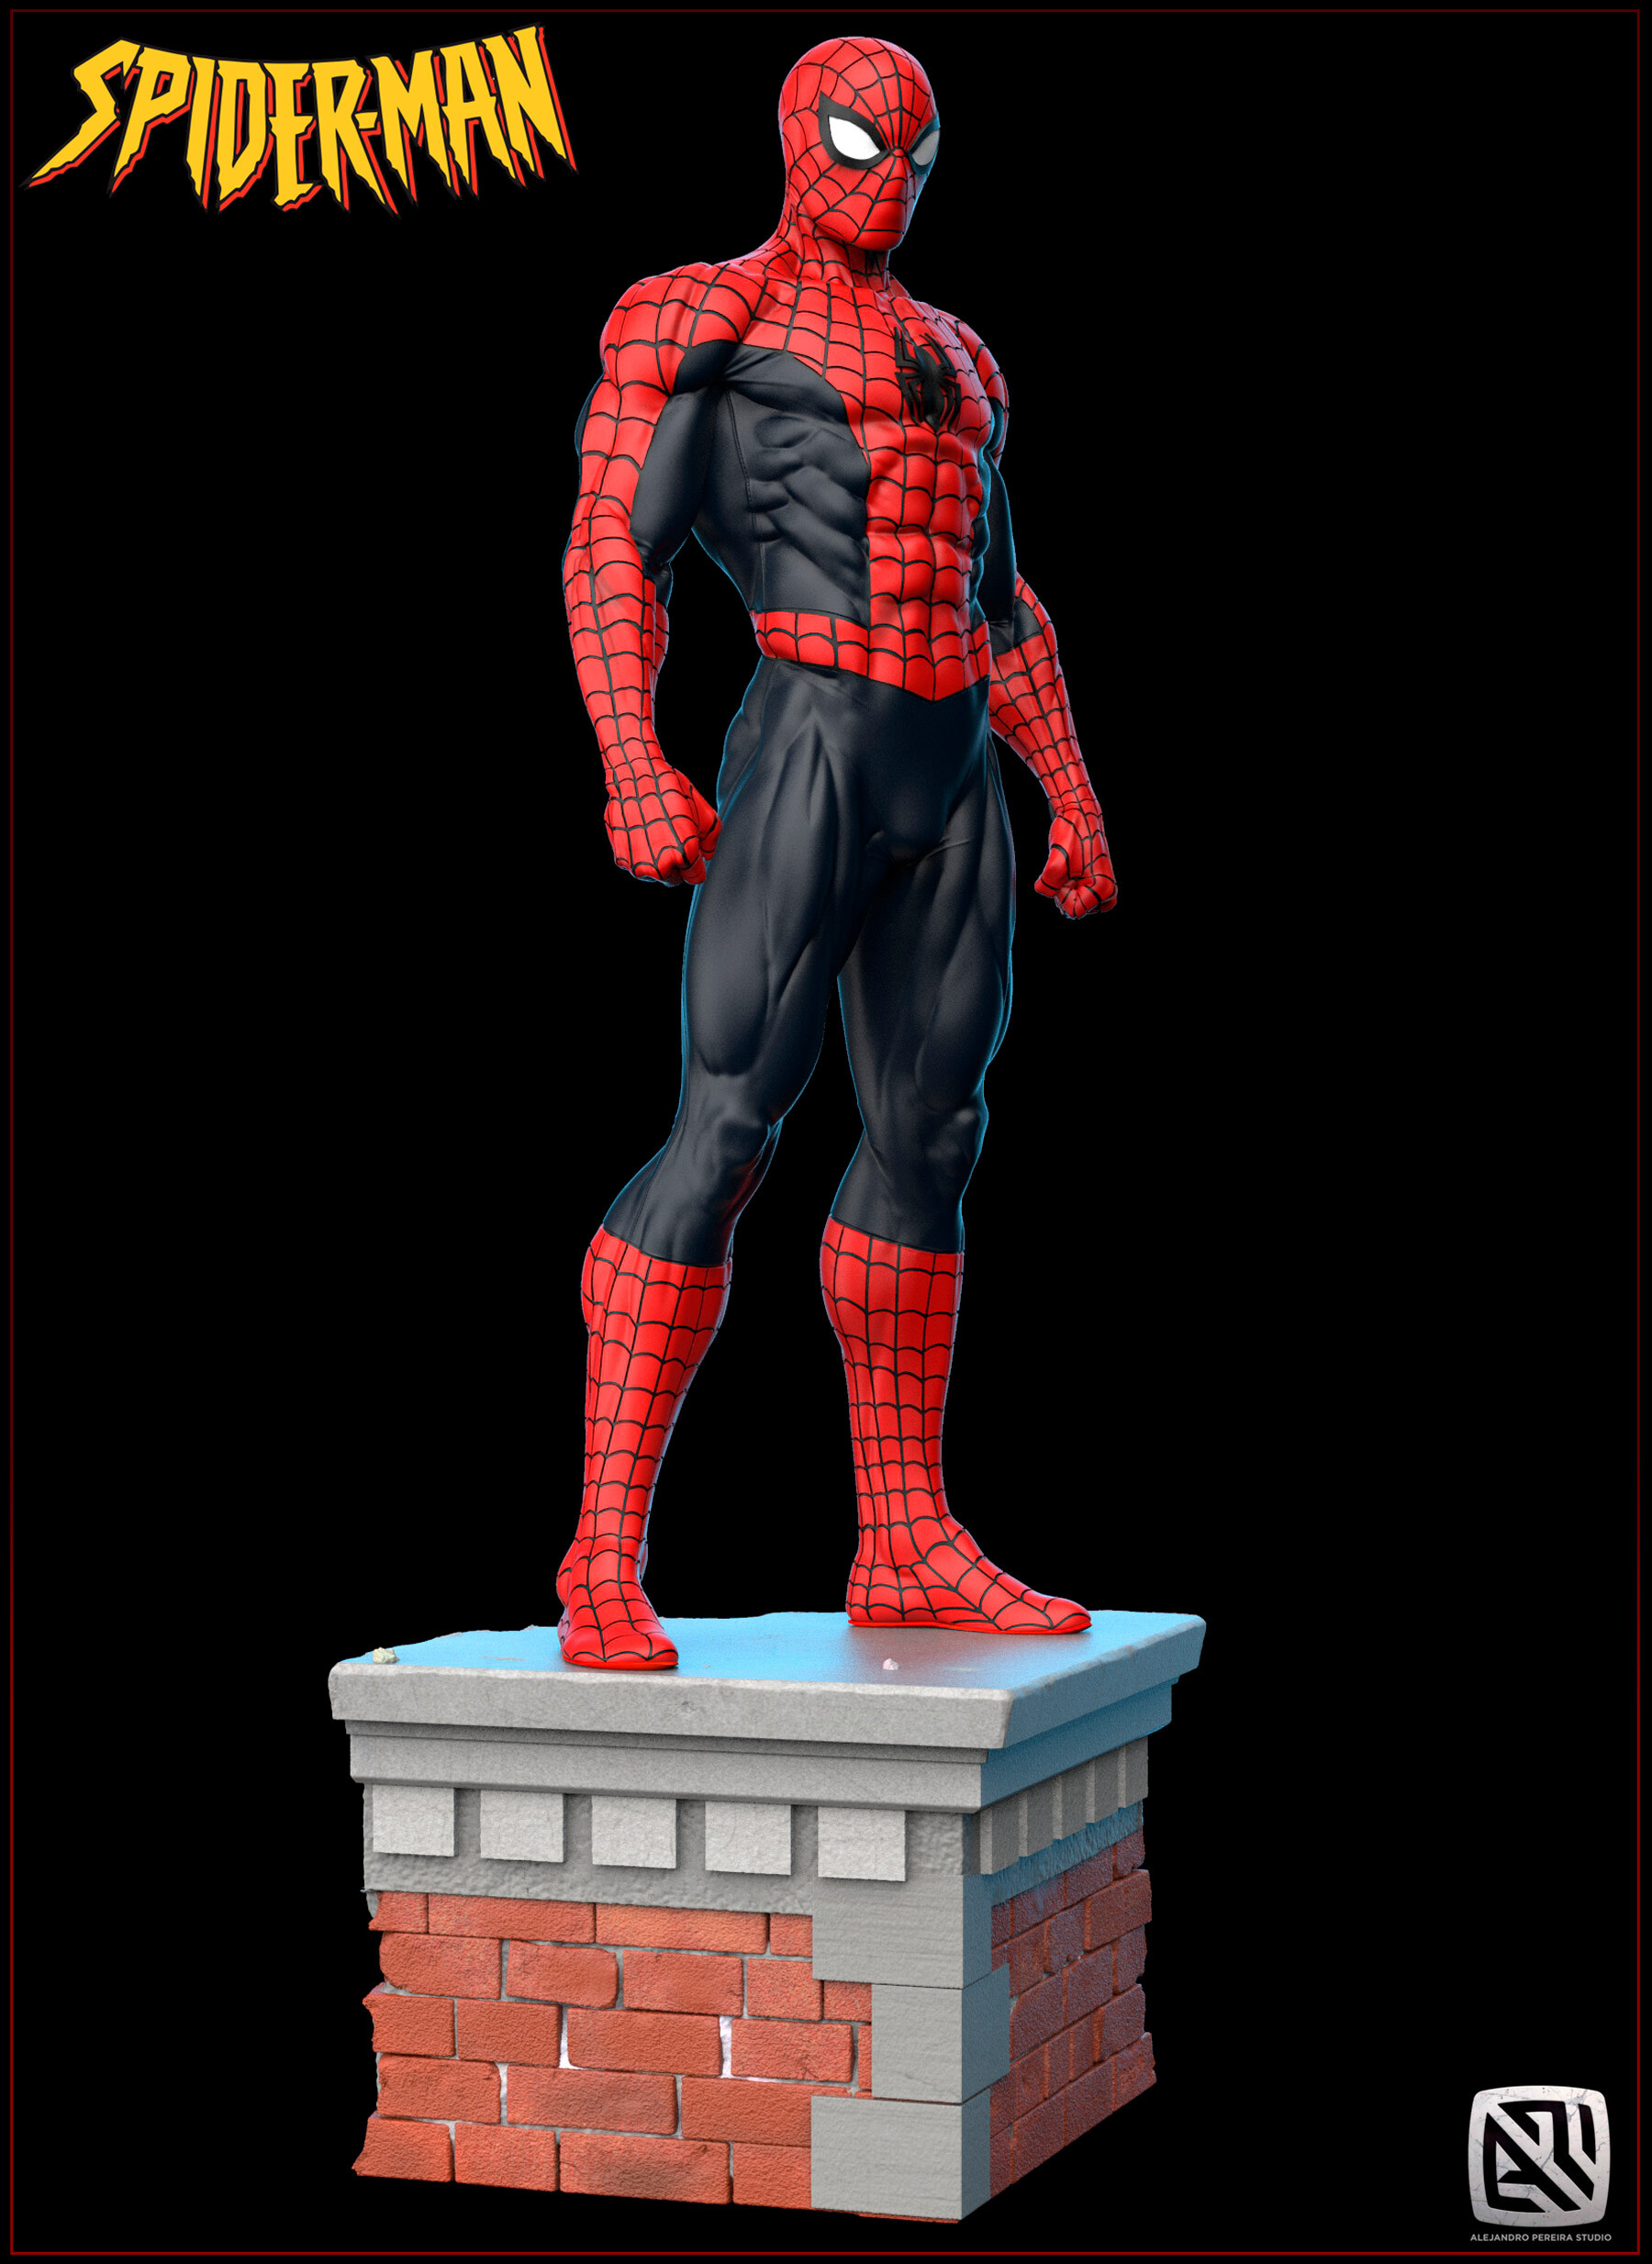 Alejandro pereira spidey render color 016